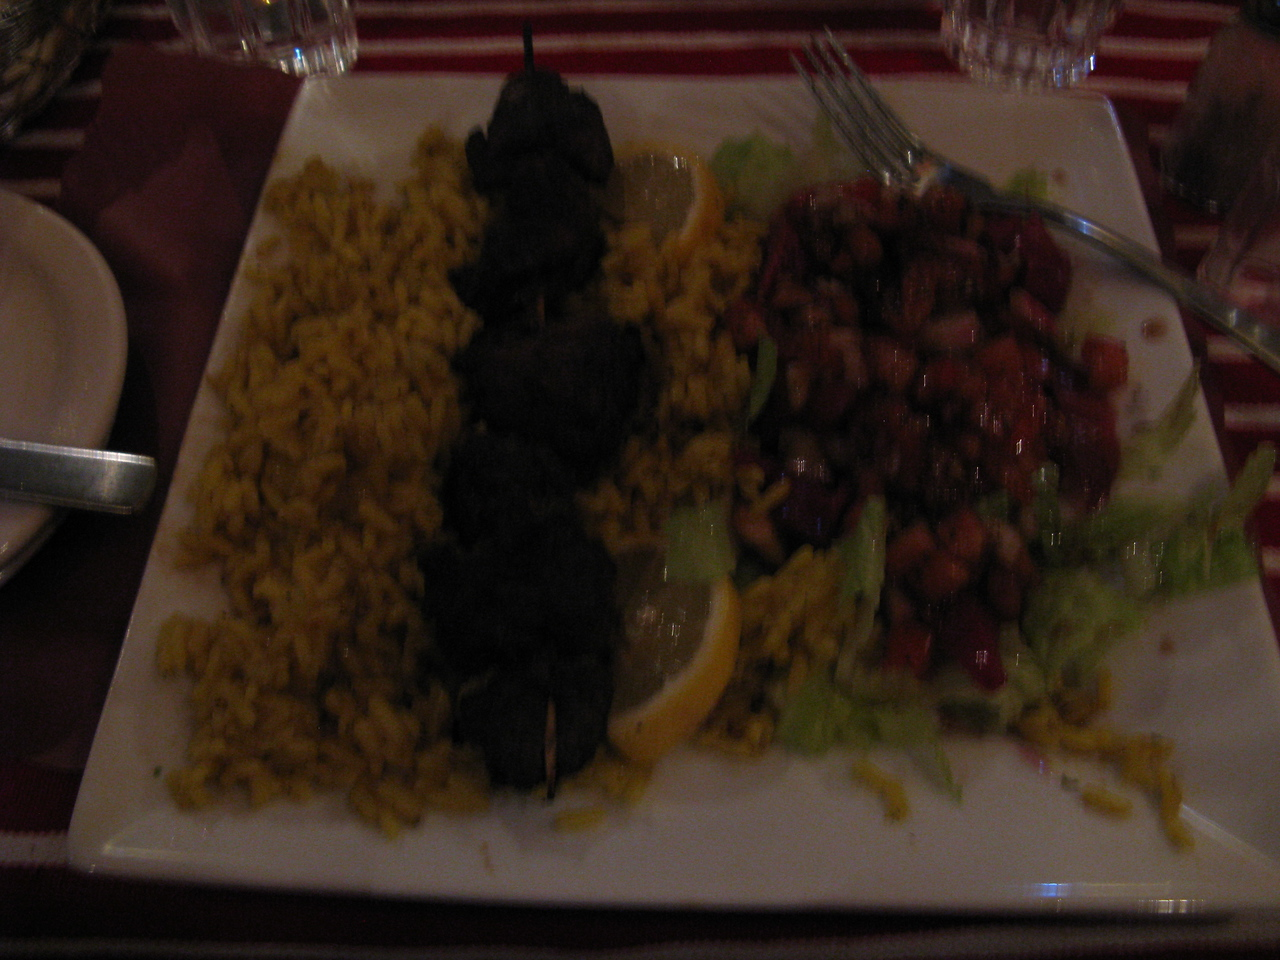 Obligatory food shot from Old Quebec. We ate in a Moroccan restaurant. Kabobs and rice and salad. Excellent meal!